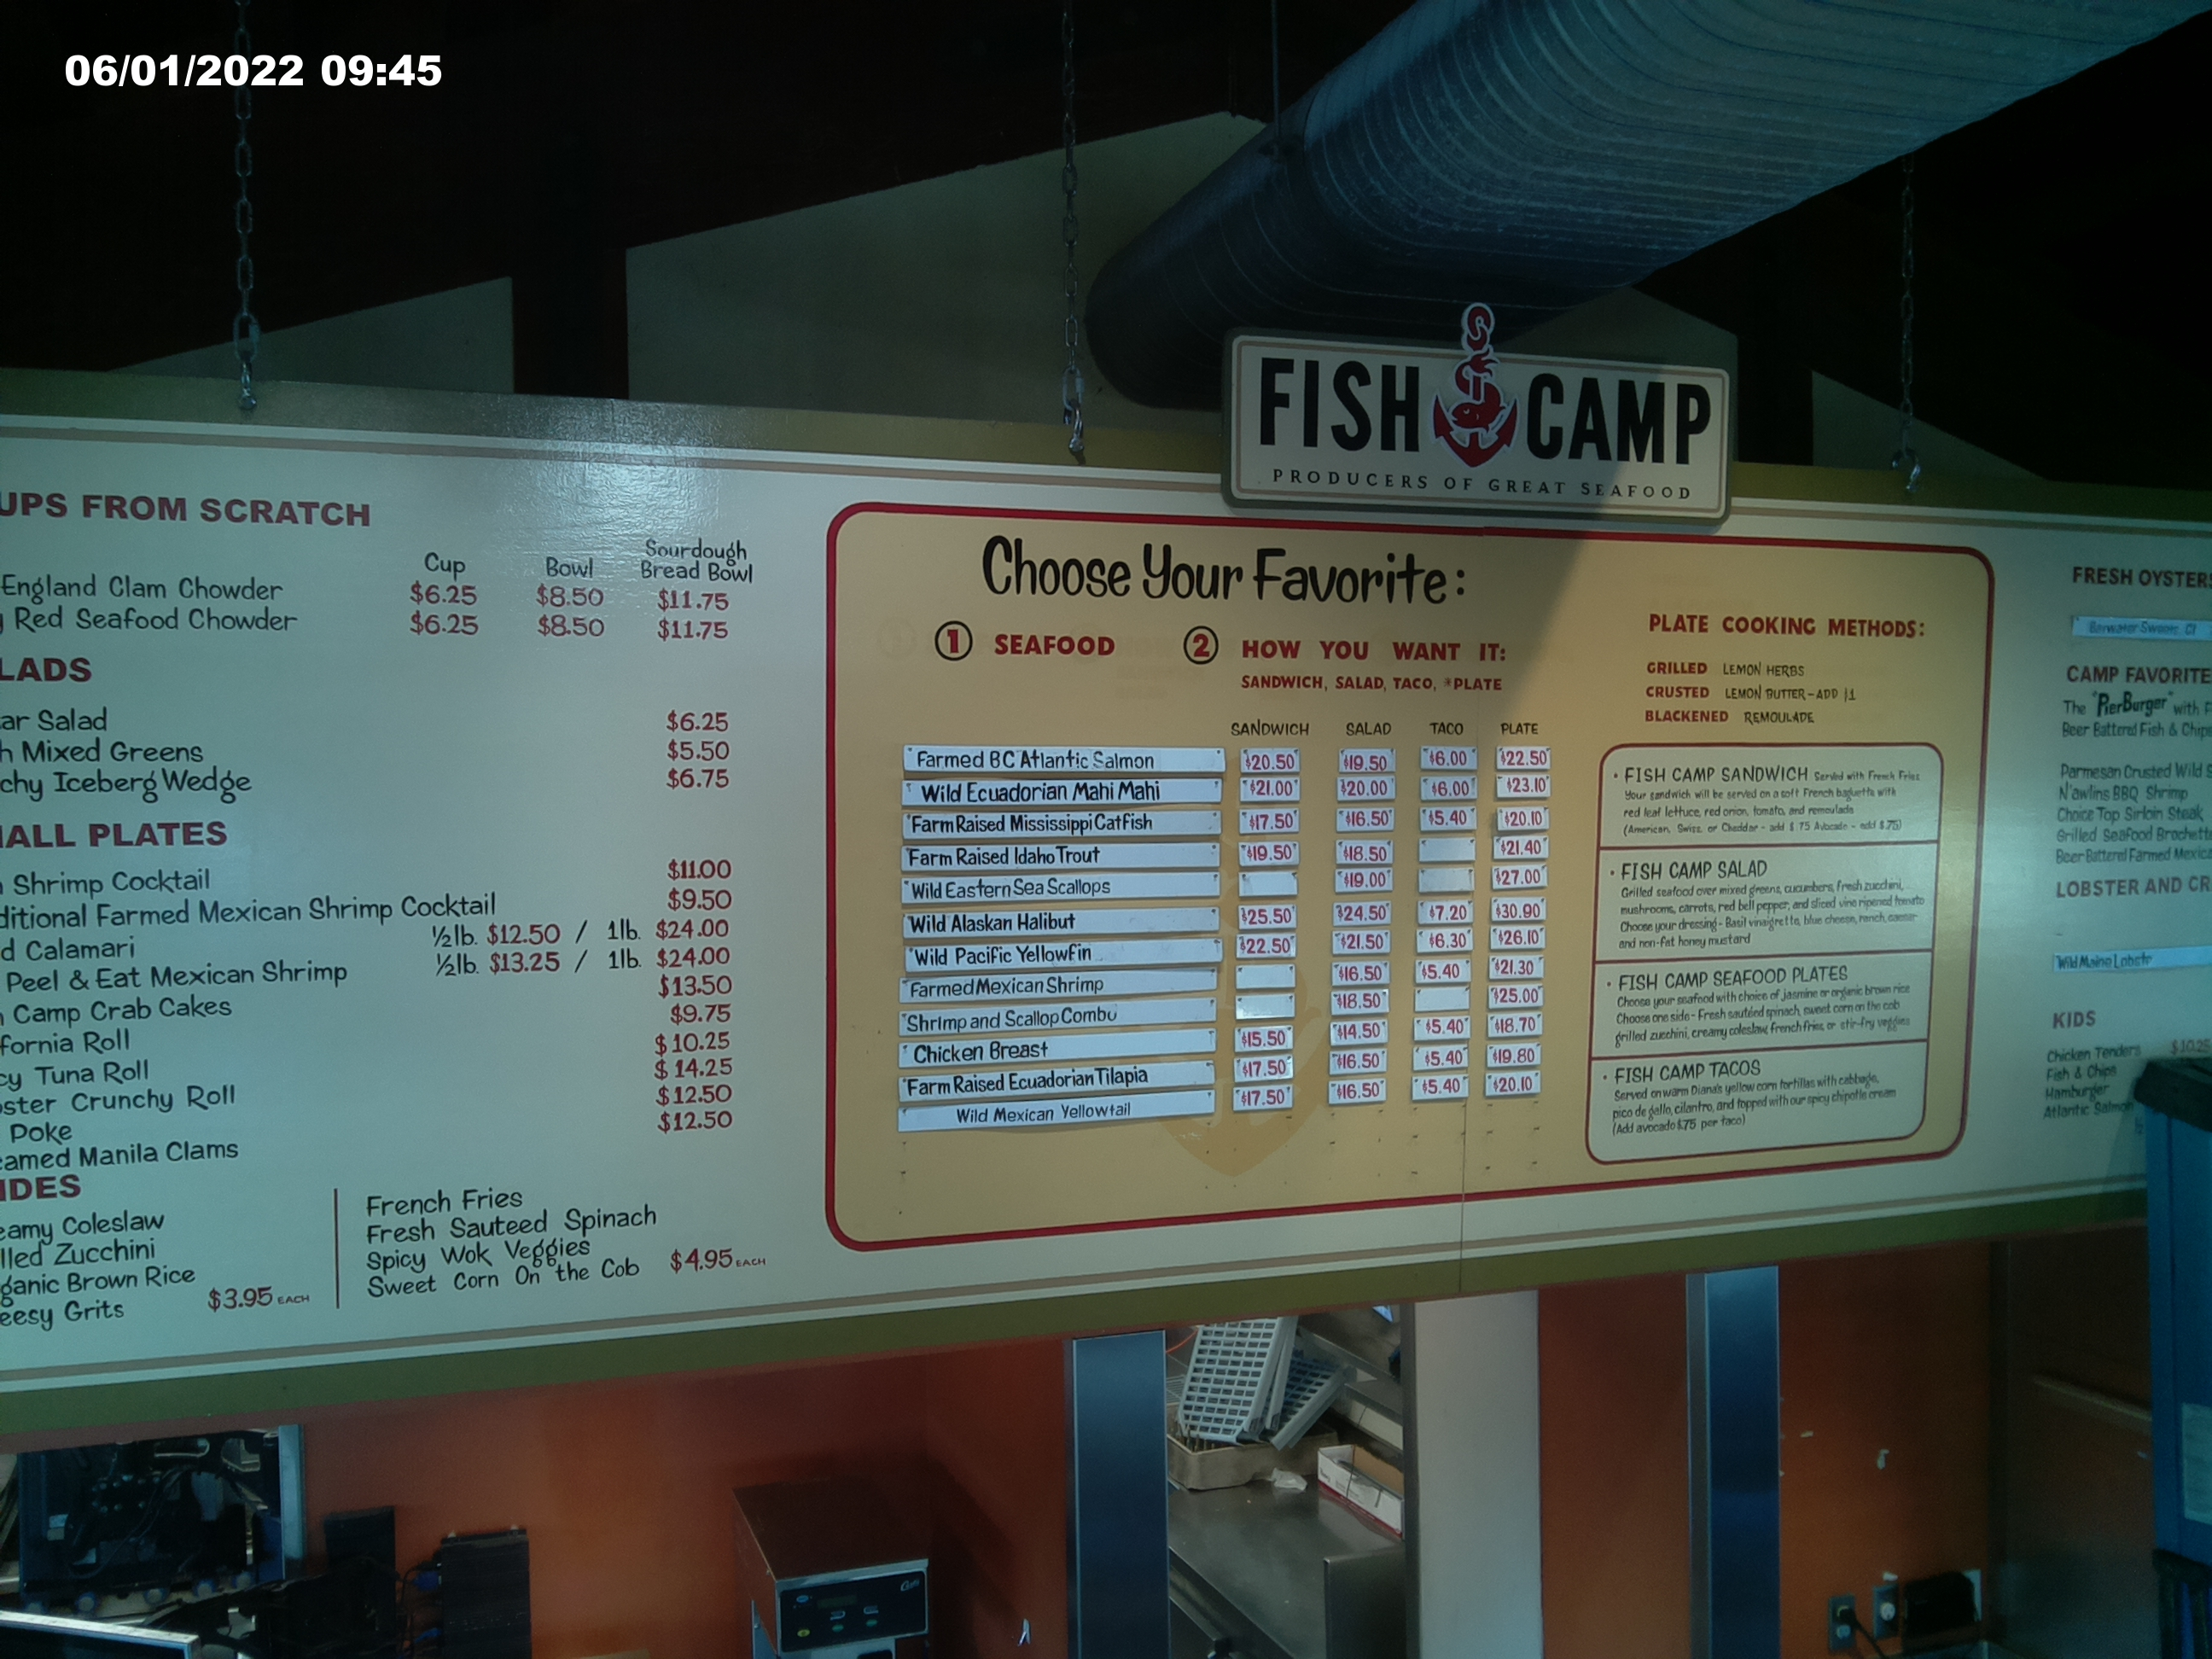 Fishcamp for King s fish house menu